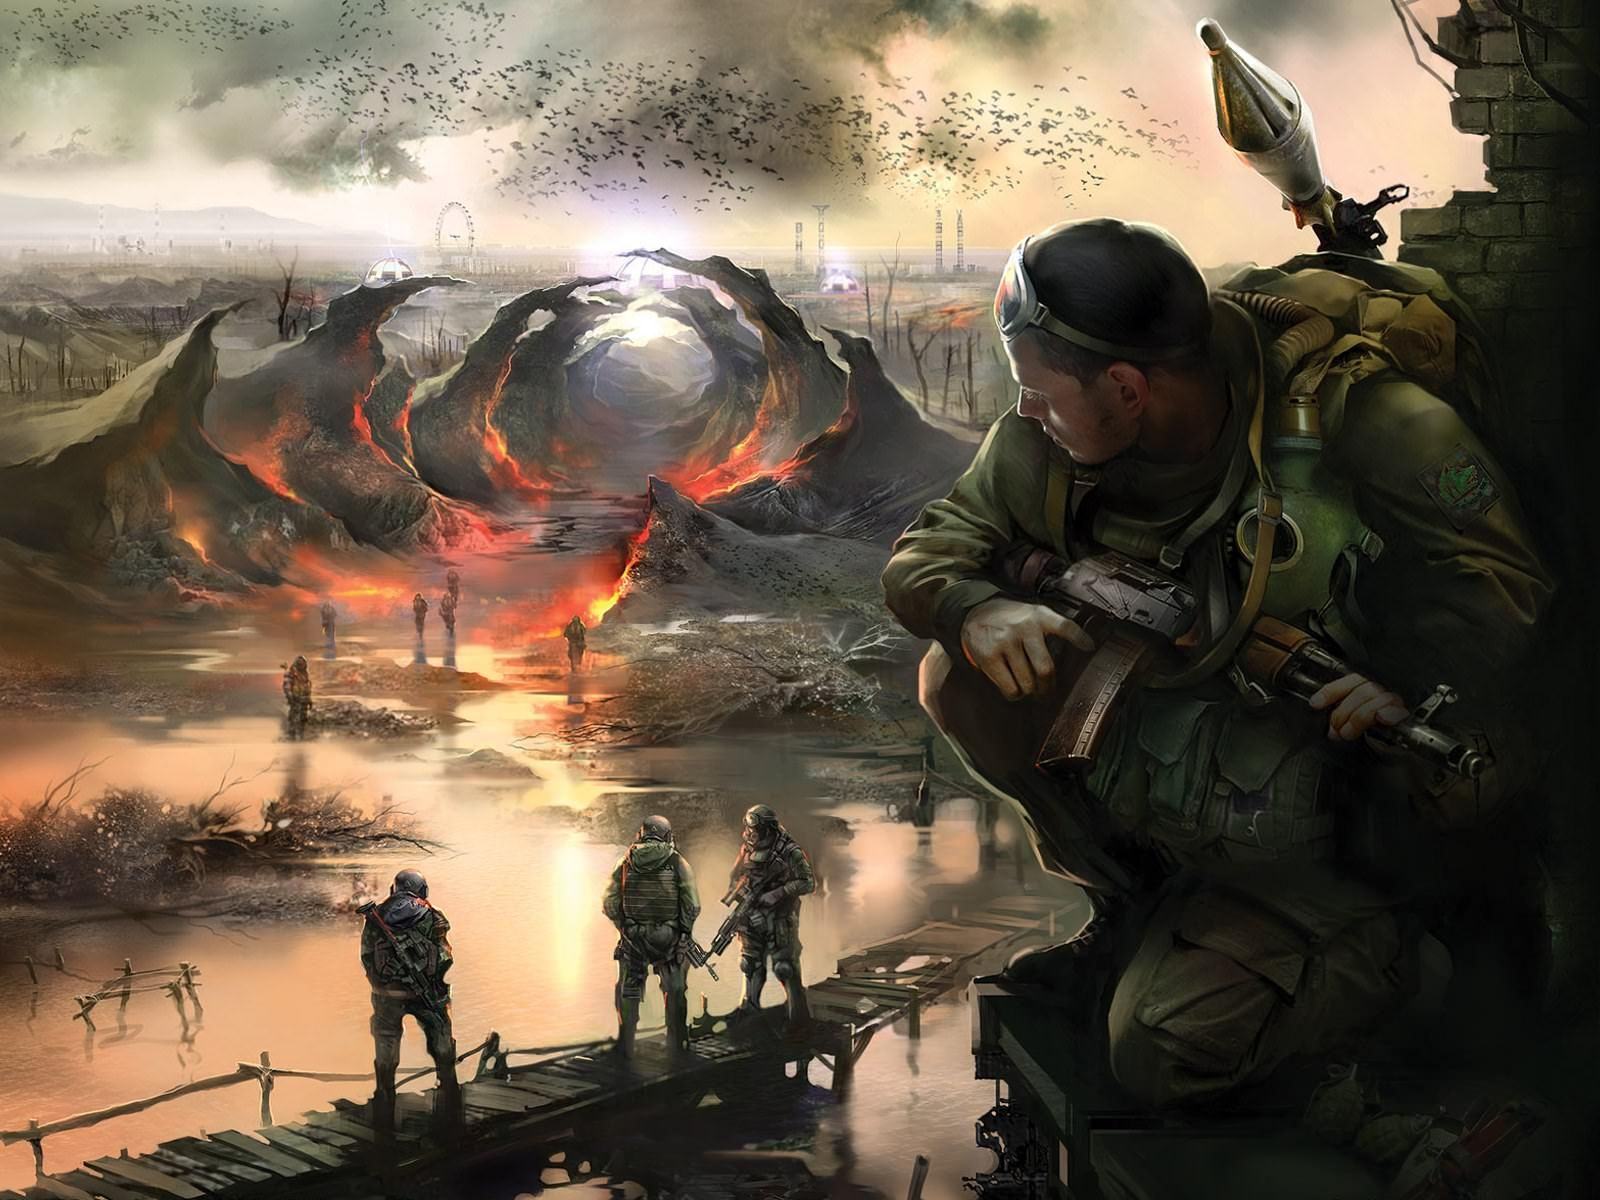 NK Video Game Wallpapers Awesome Backgrounds